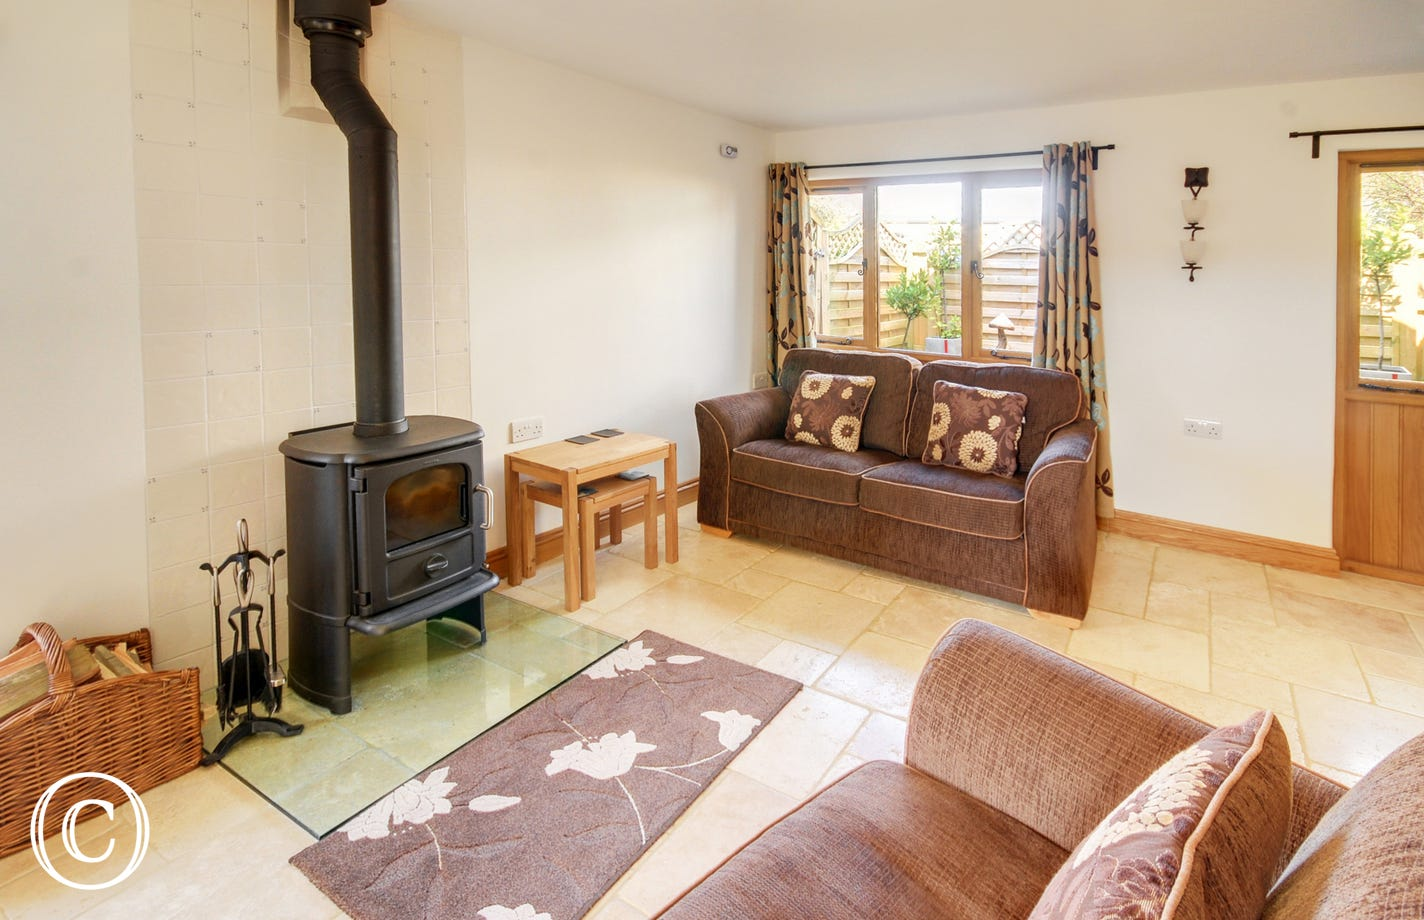 The stylish living room with comfy seating and wood burning stove